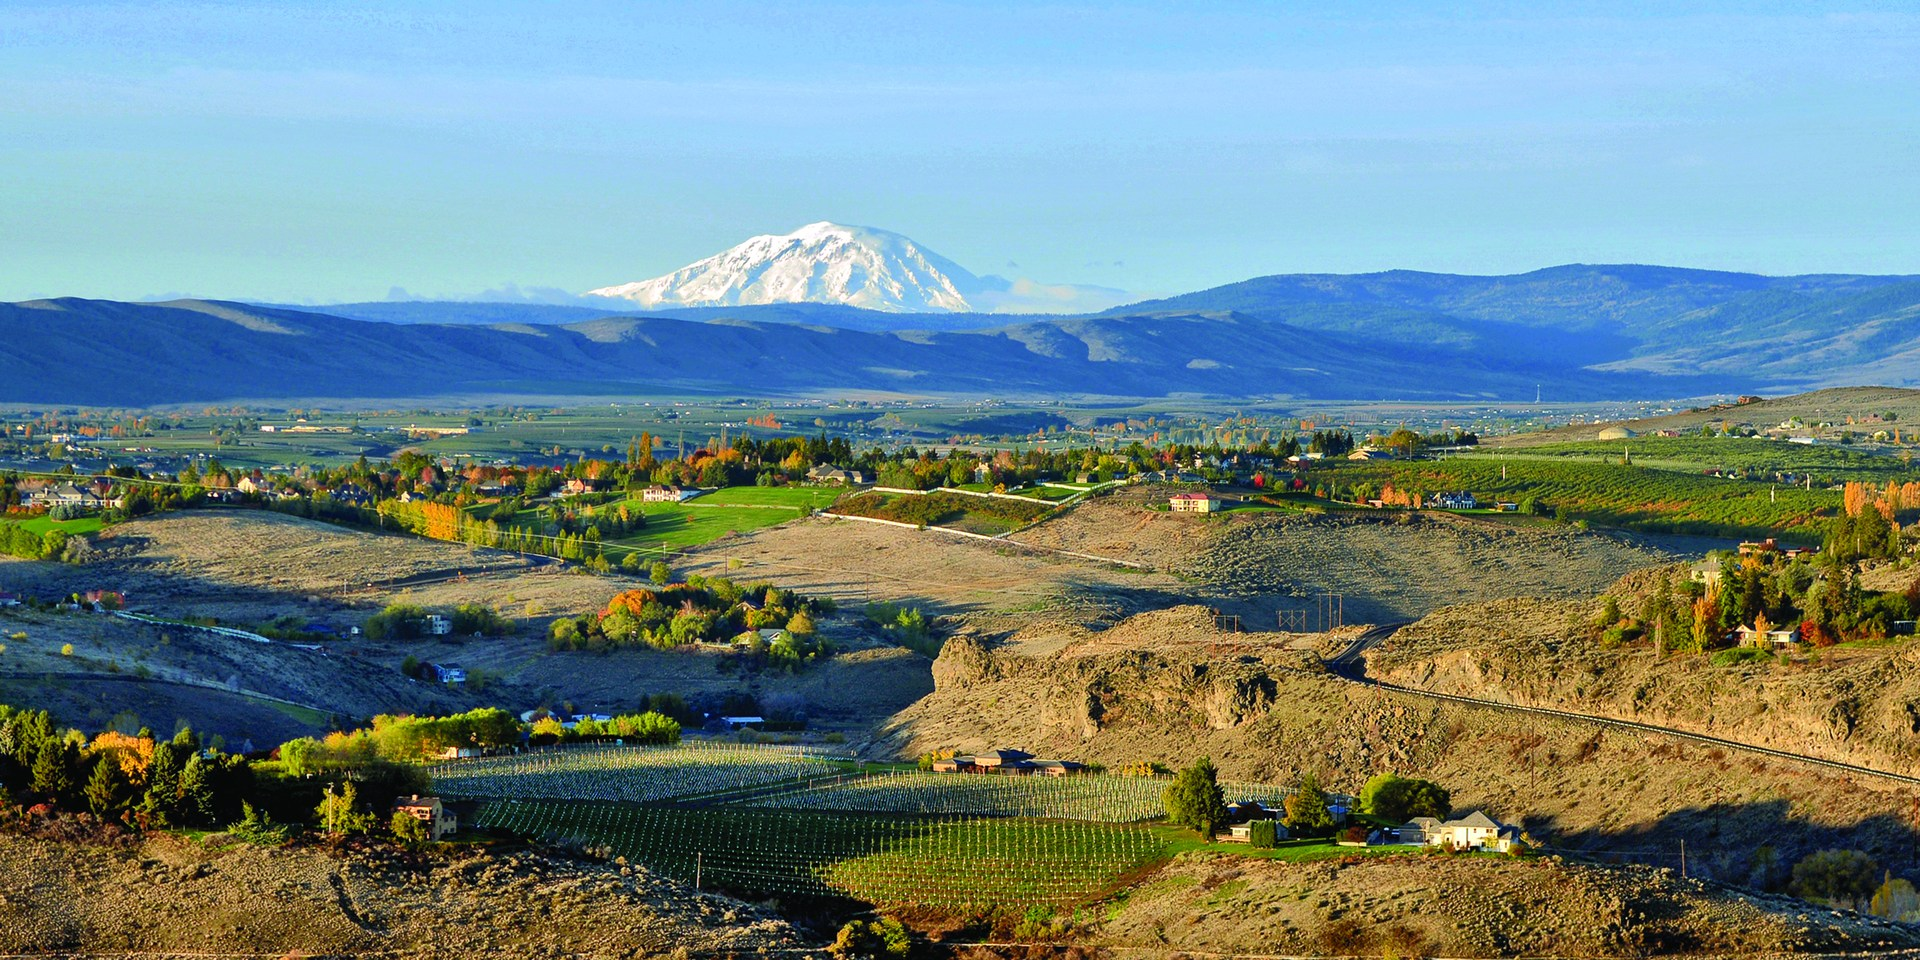 A picture of the region that makes up the East Valley School District. Including an image of Mt. Adams.